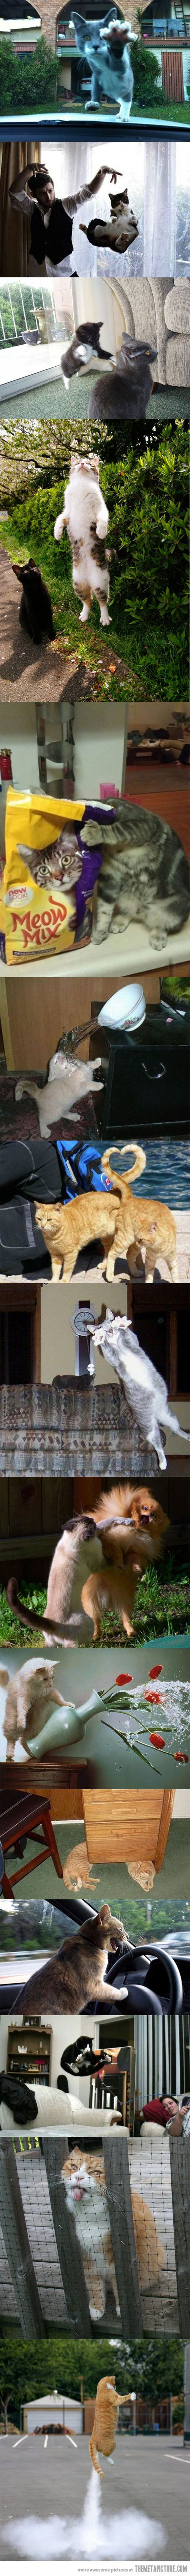 15 perfectly timed cat photos…..not a cat fan but some of these really made me laugh